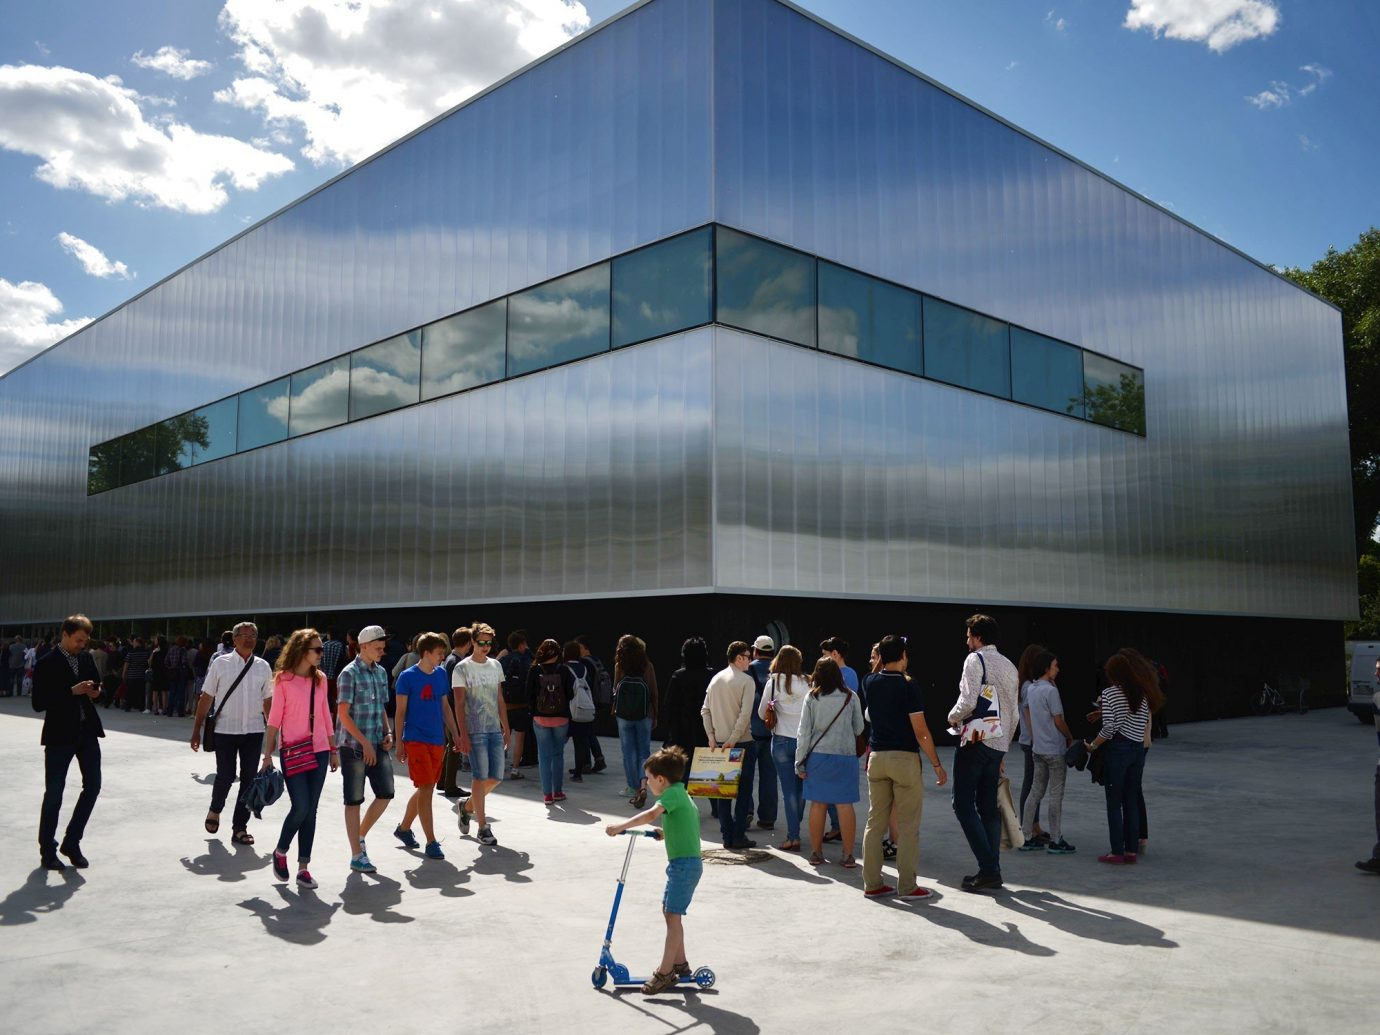 Arts + Culture sky outdoor building leisure Architecture people rink ice rink arena campus headquarters crowd